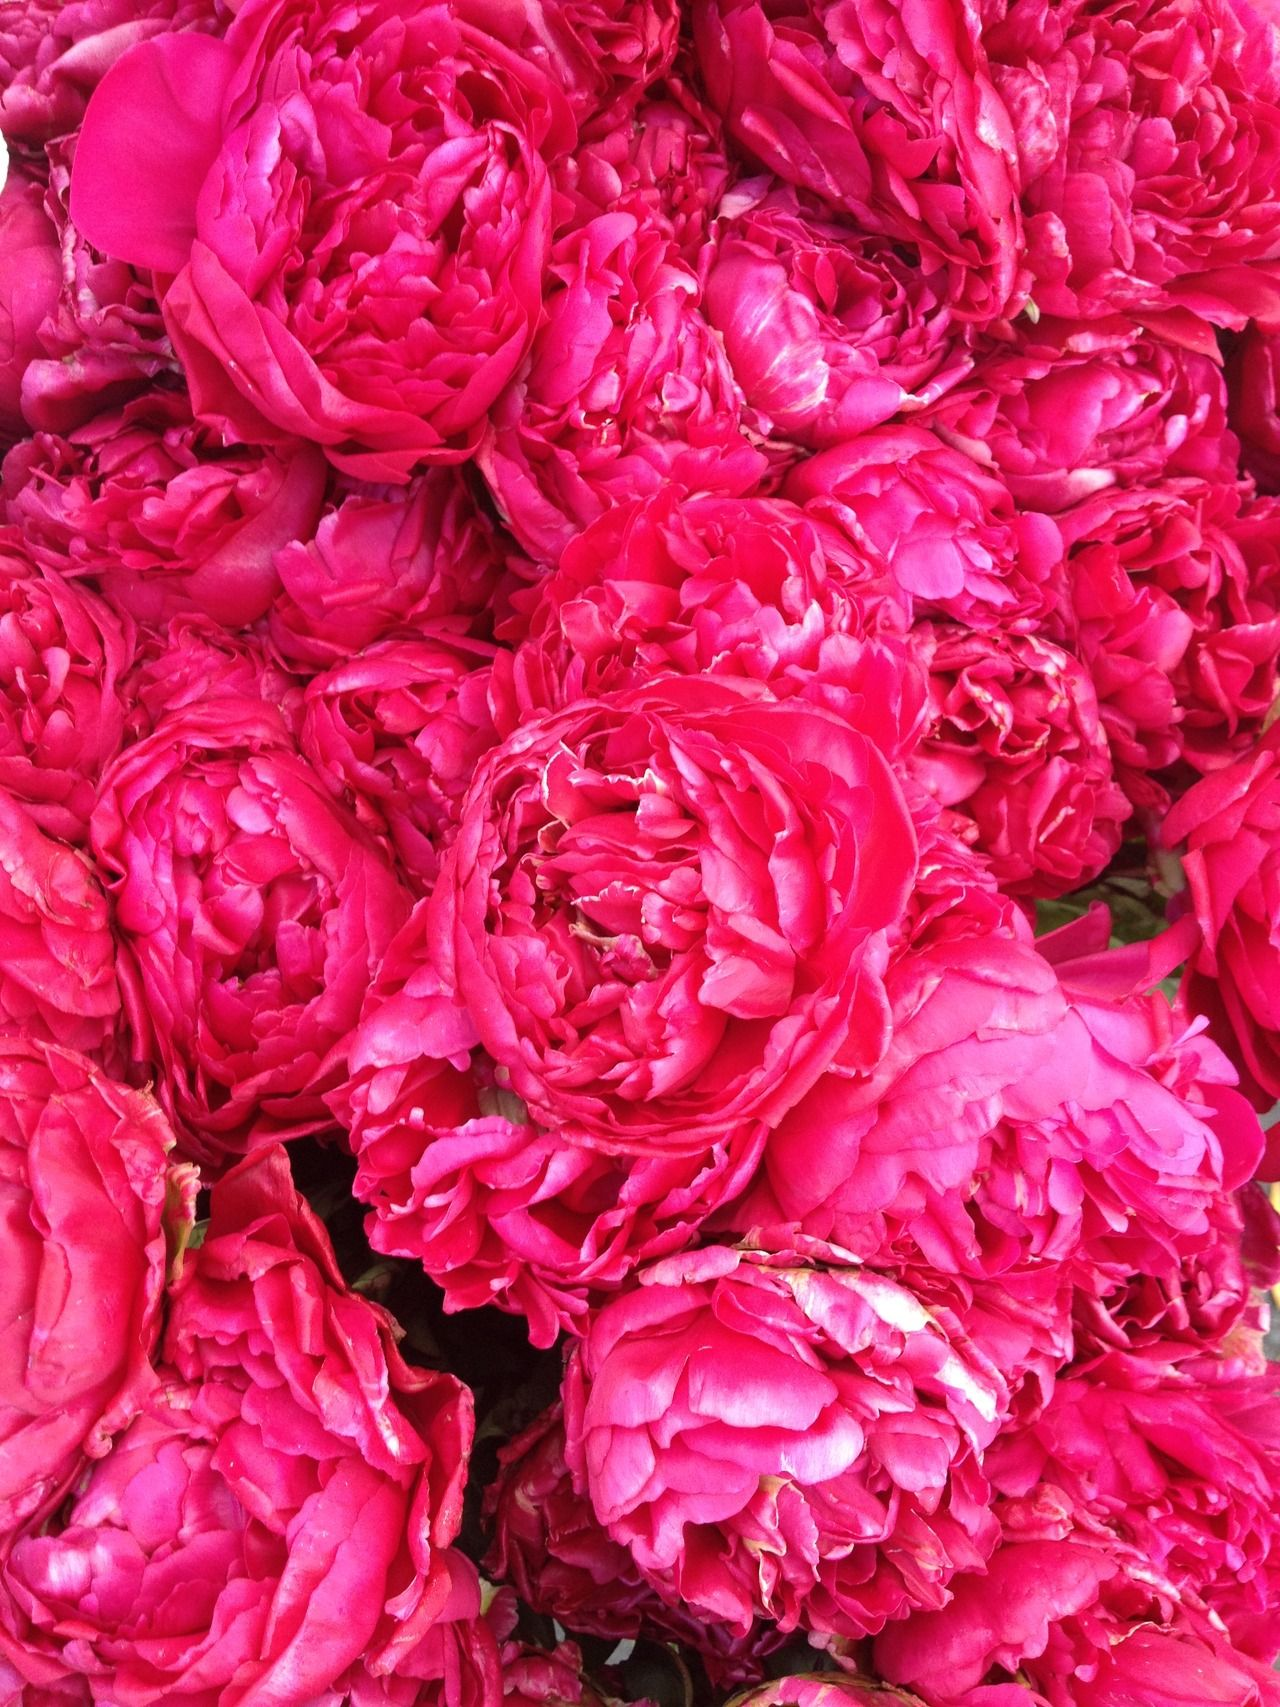 The Pink Peonies lush pink peonies!! oh so lovely + ten times better than roses